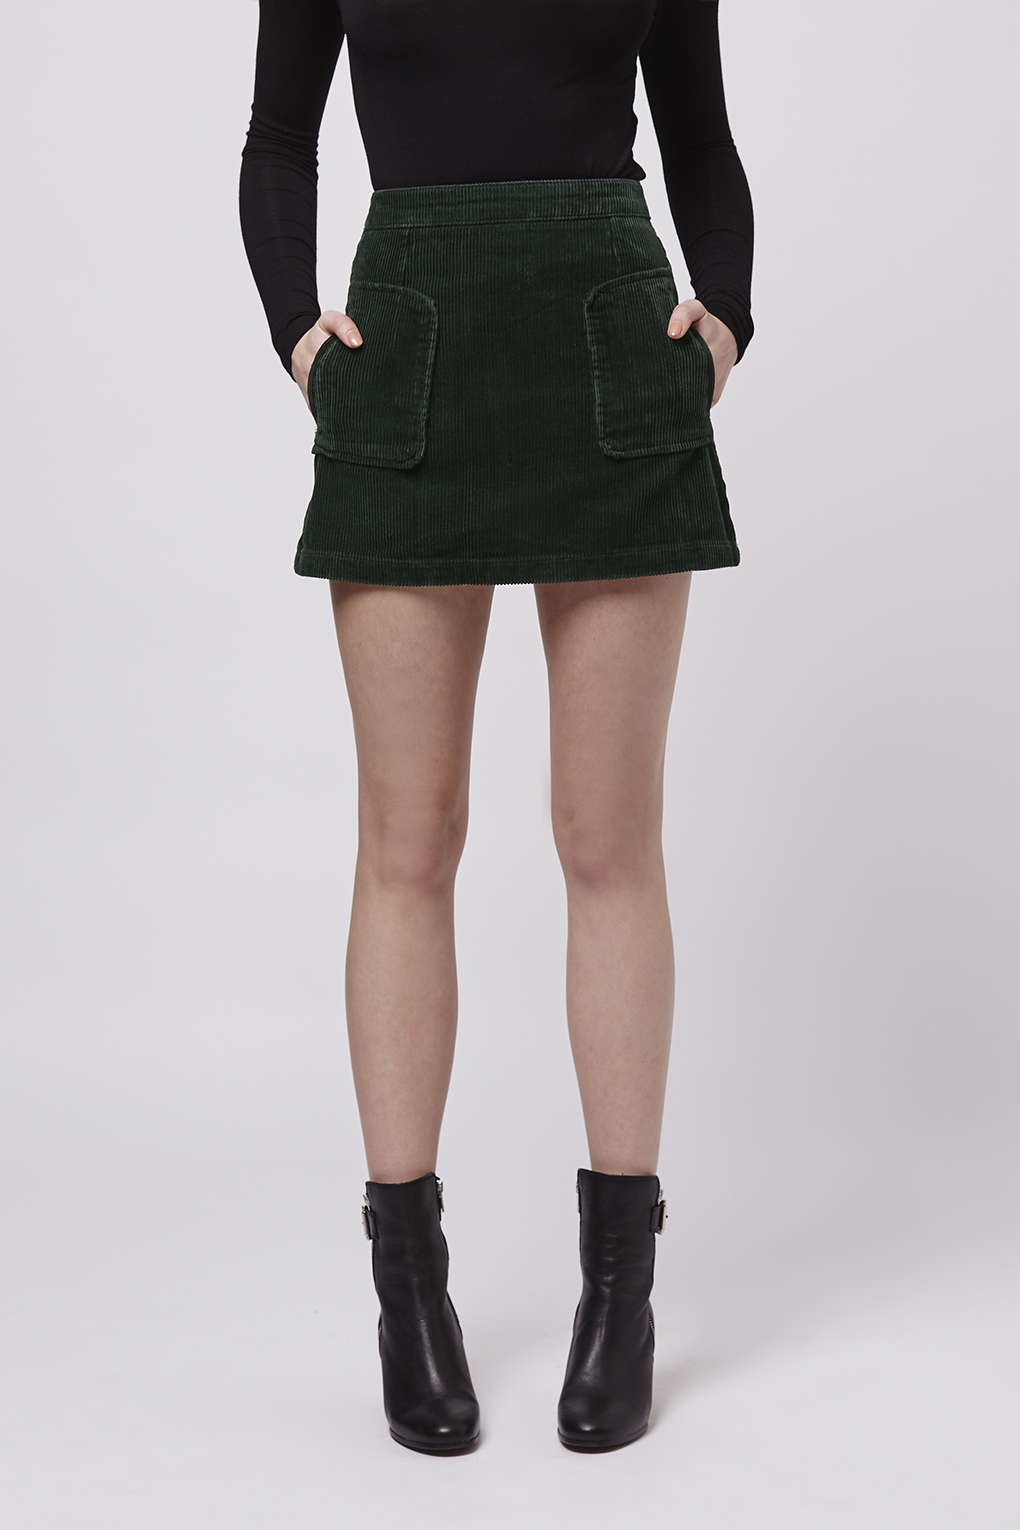 37070c2d1b0b TOPSHOP Patch Pocket Cord A-line Skirt in Green - Lyst